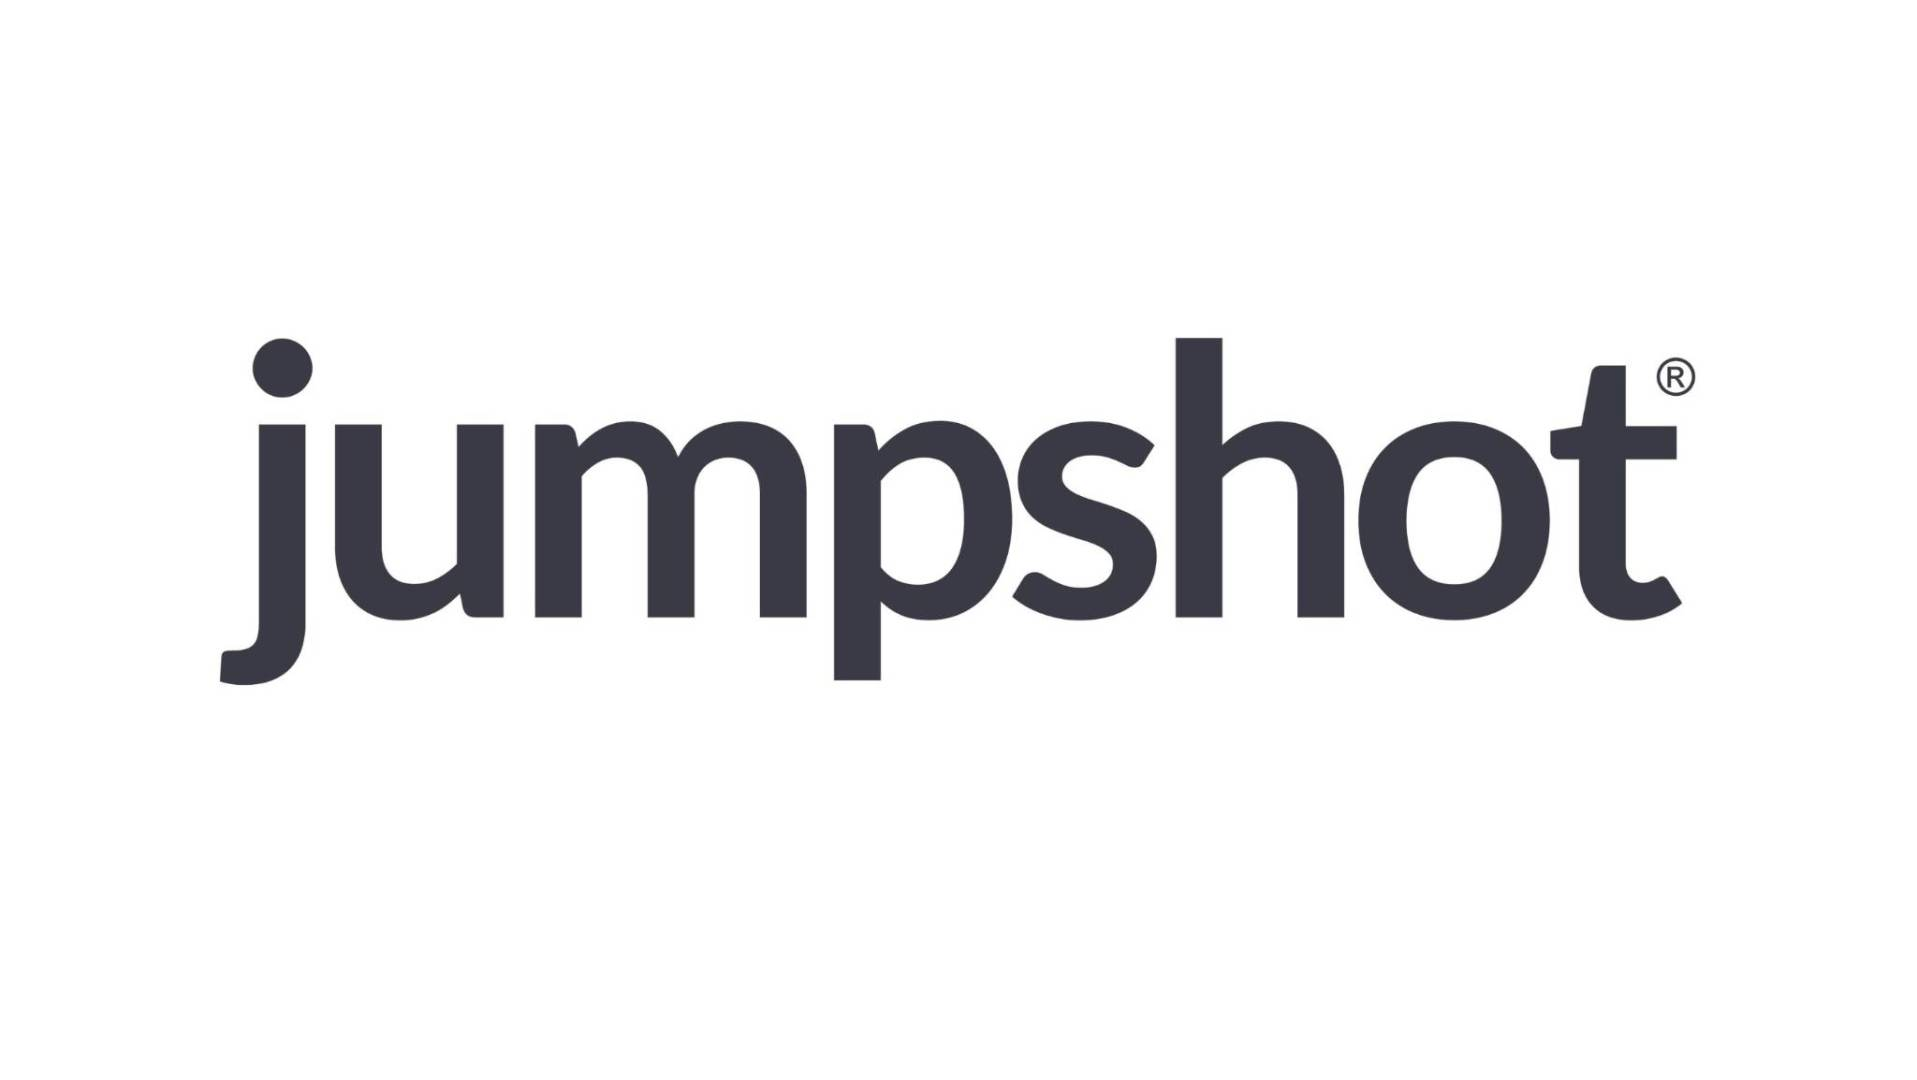 Jumpshot logo